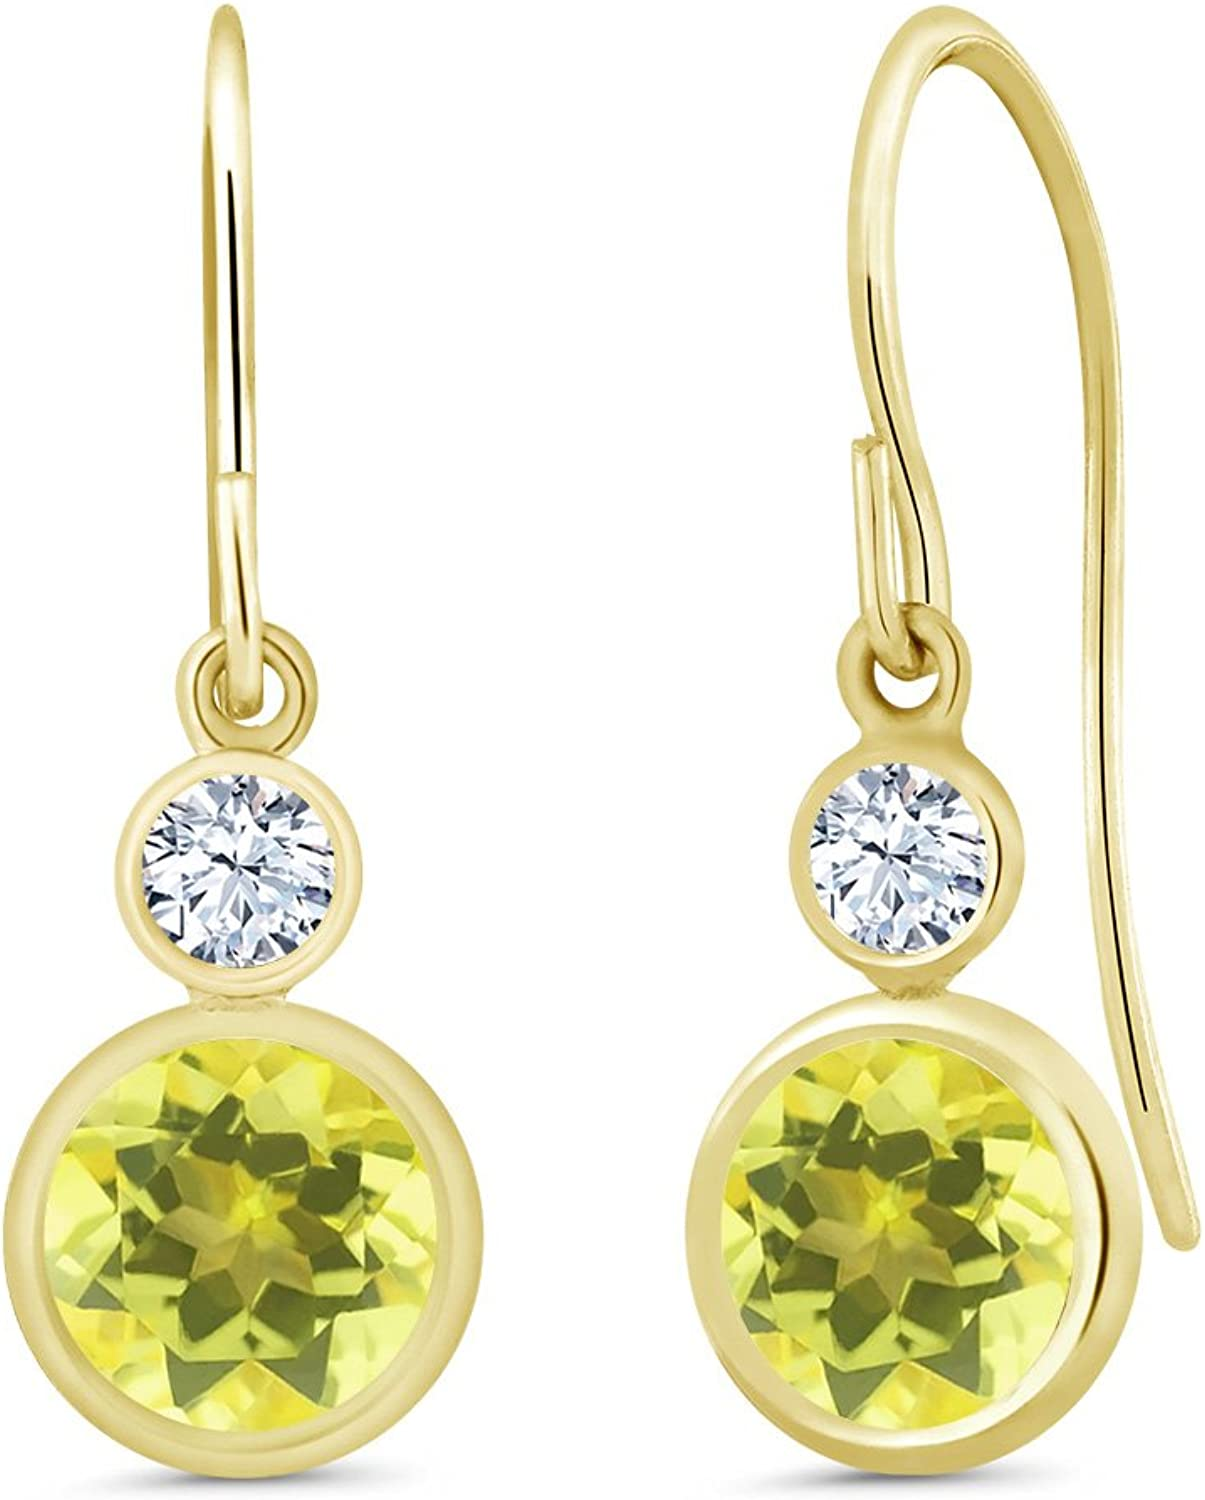 2.22 Ct Round Canary Mystic Topaz 14K Yellow gold Earrings